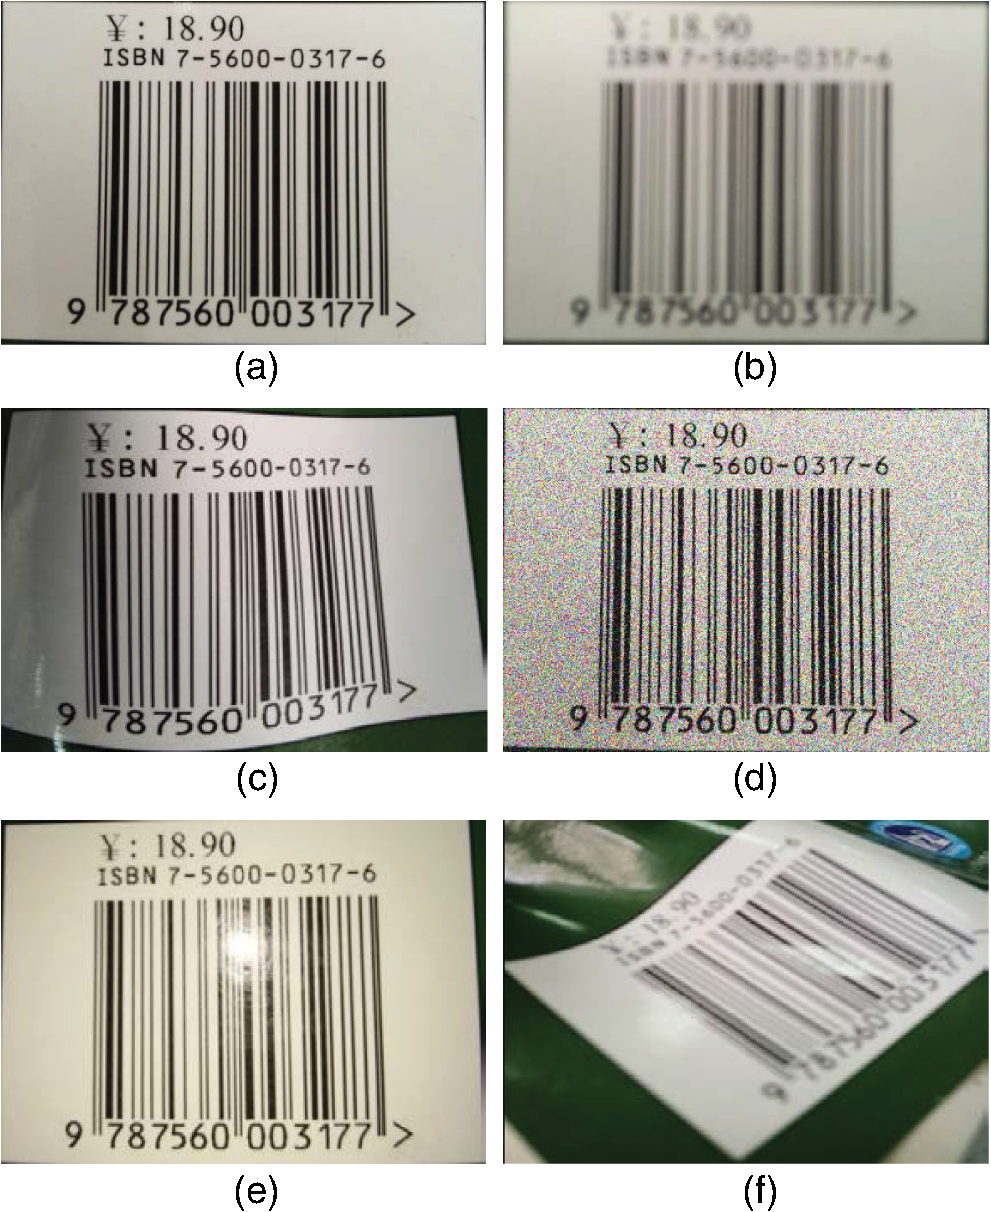 Automatic barcode recognition method based on adaptive edge